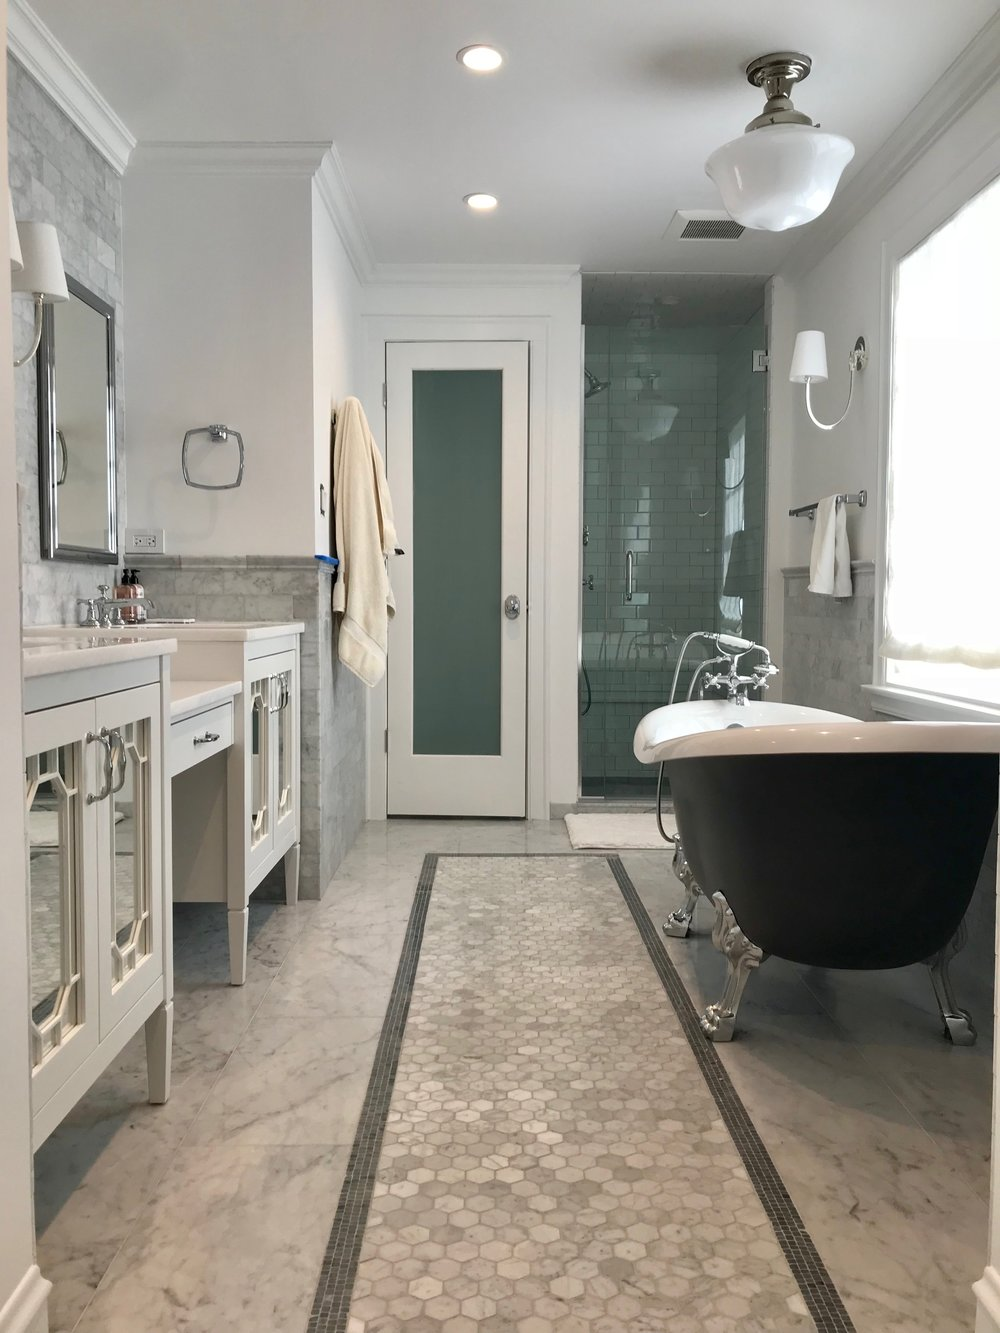 """We recessed the 84"""" vanity into the wall to accommodate the free-standing tub. We used Walker Zanger's Grigio Scuro mosaic to create a border around the white carrara hex tile along the center line of the bathroom."""